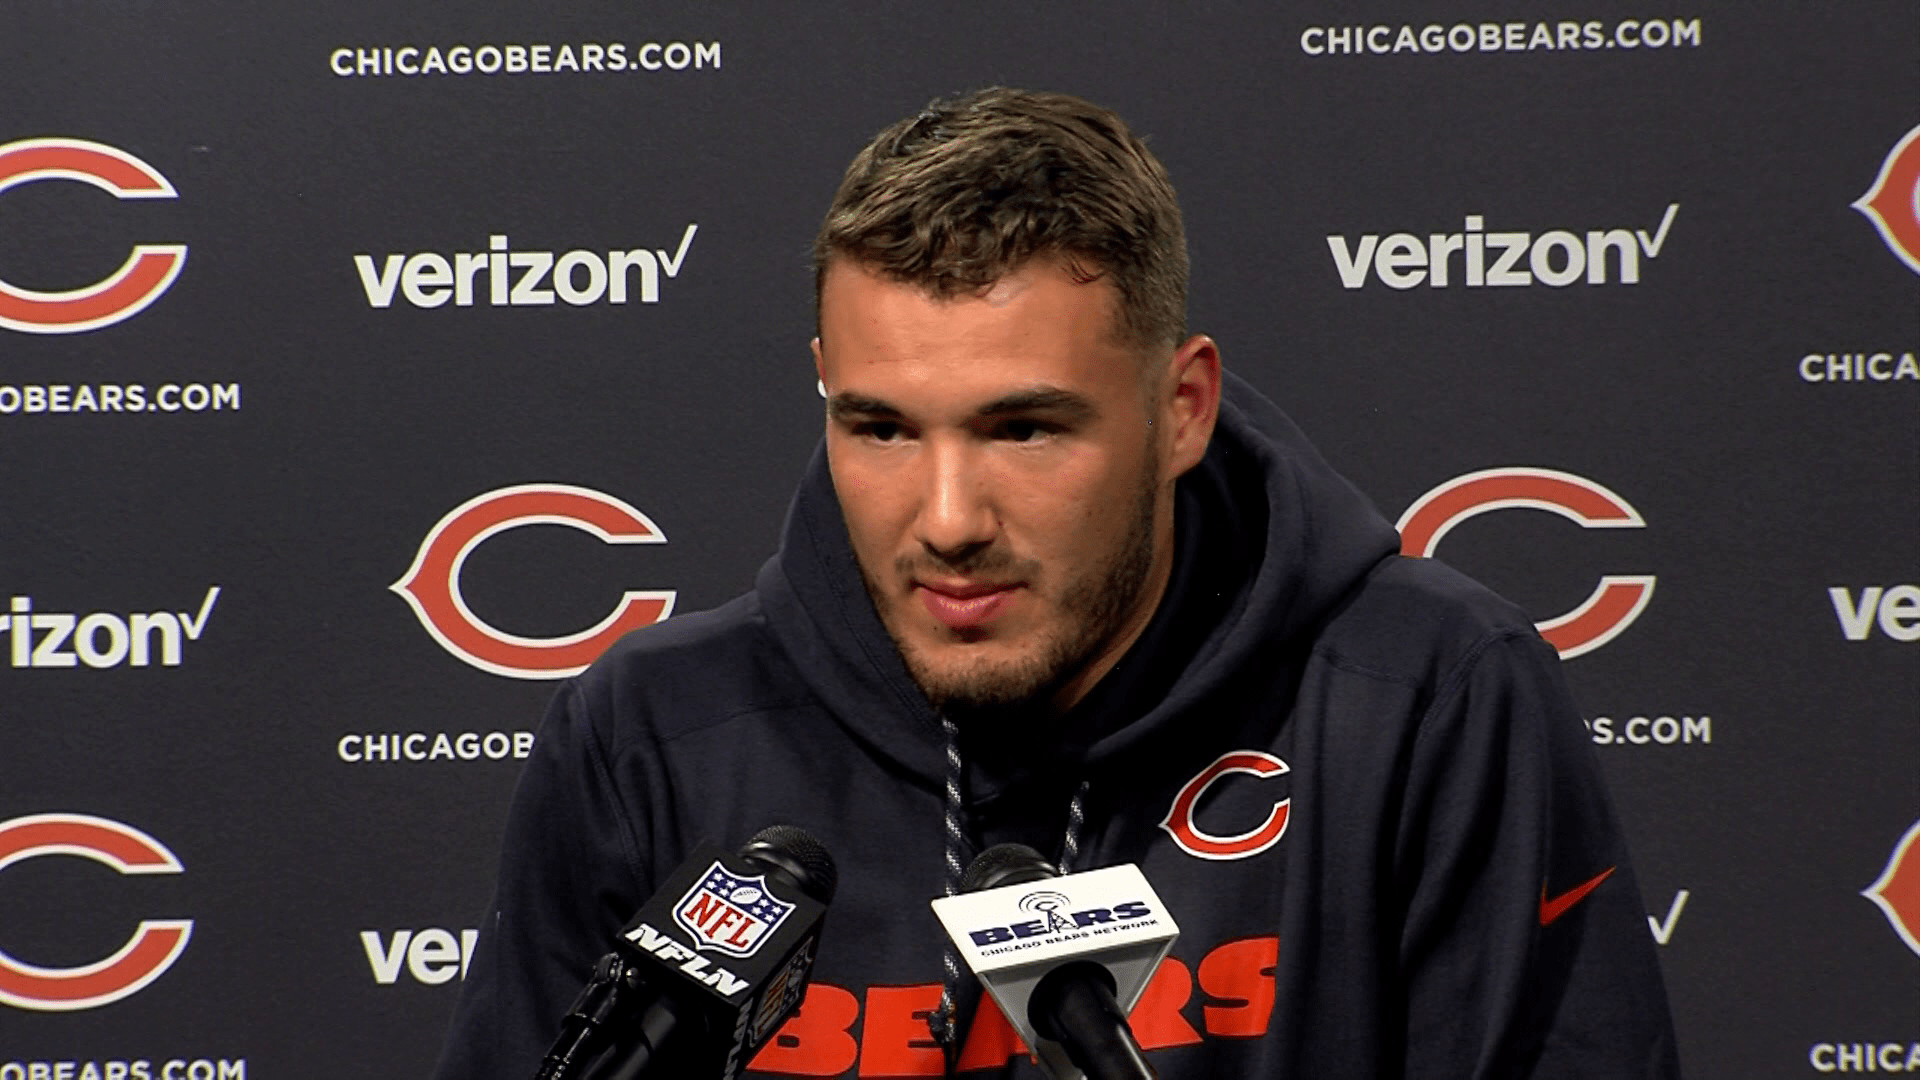 Trubisky photo 6-6-18_1528328818466.png.jpg